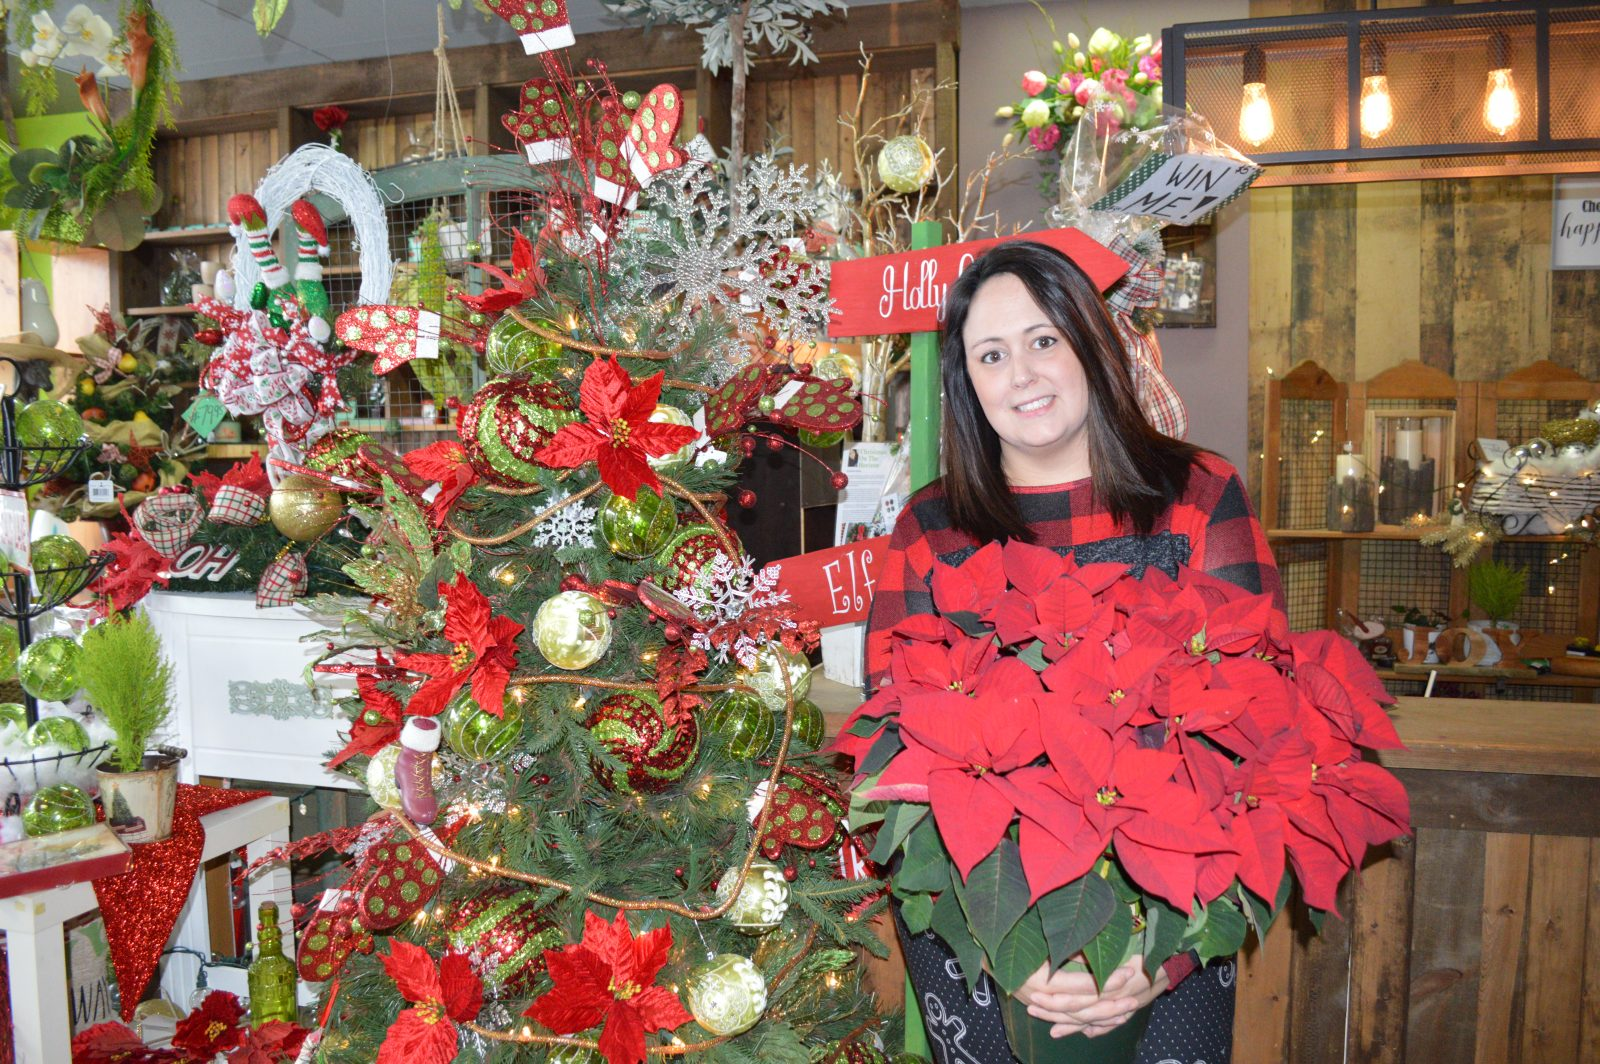 Flowers for kids at Christmas